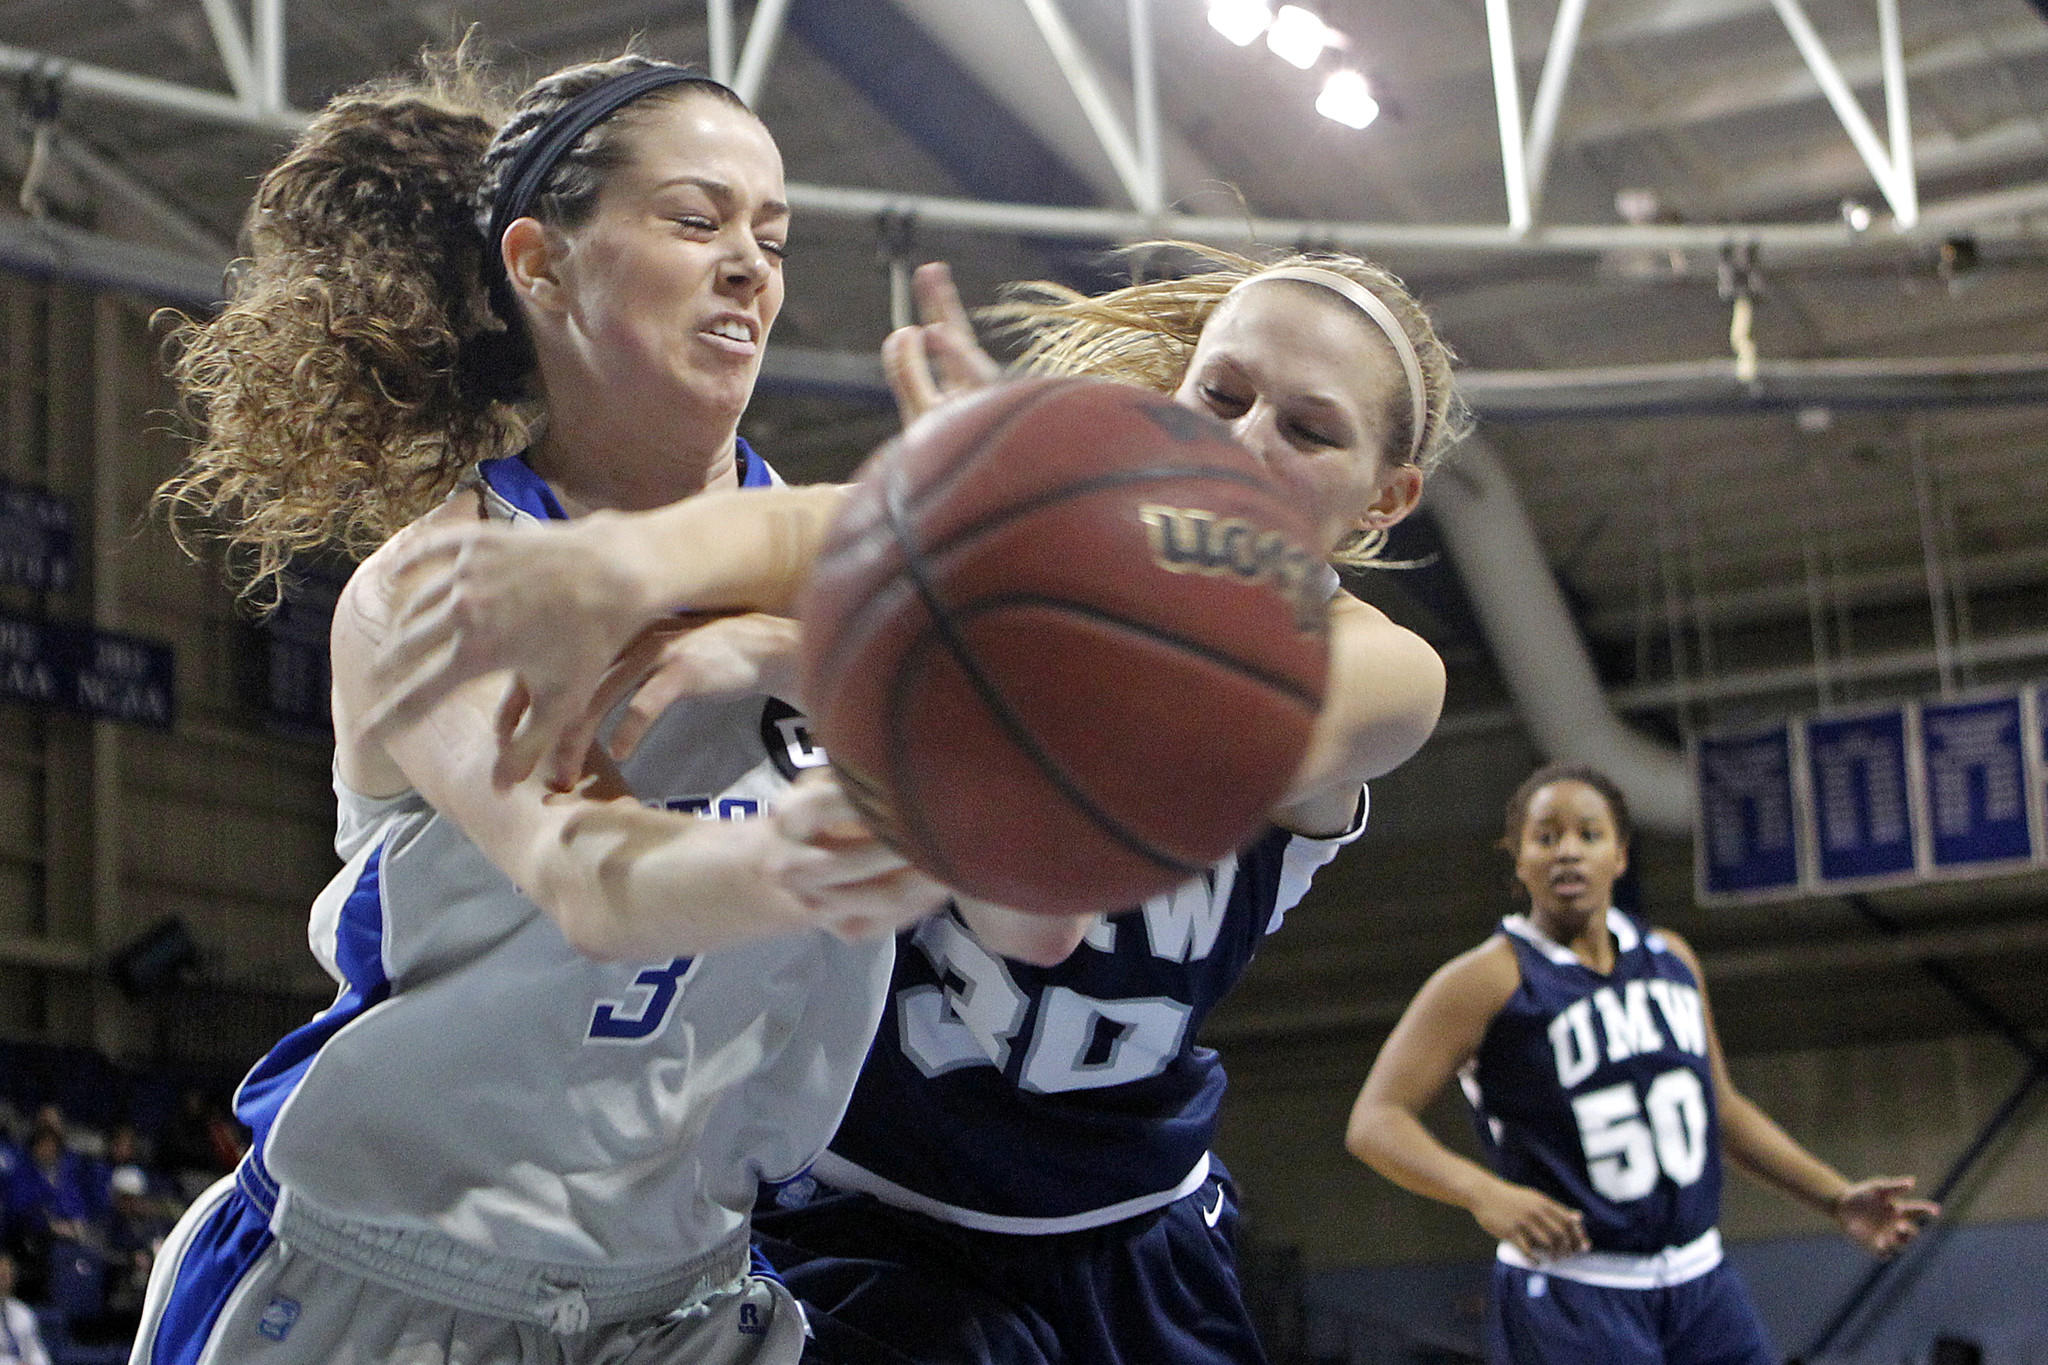 Christopher Newport University's Kendra Stone, left, battles for a loose ball with University of Mary Washington's Brieneke Matthes, center, during Wednesday's game at the Freeman Center.